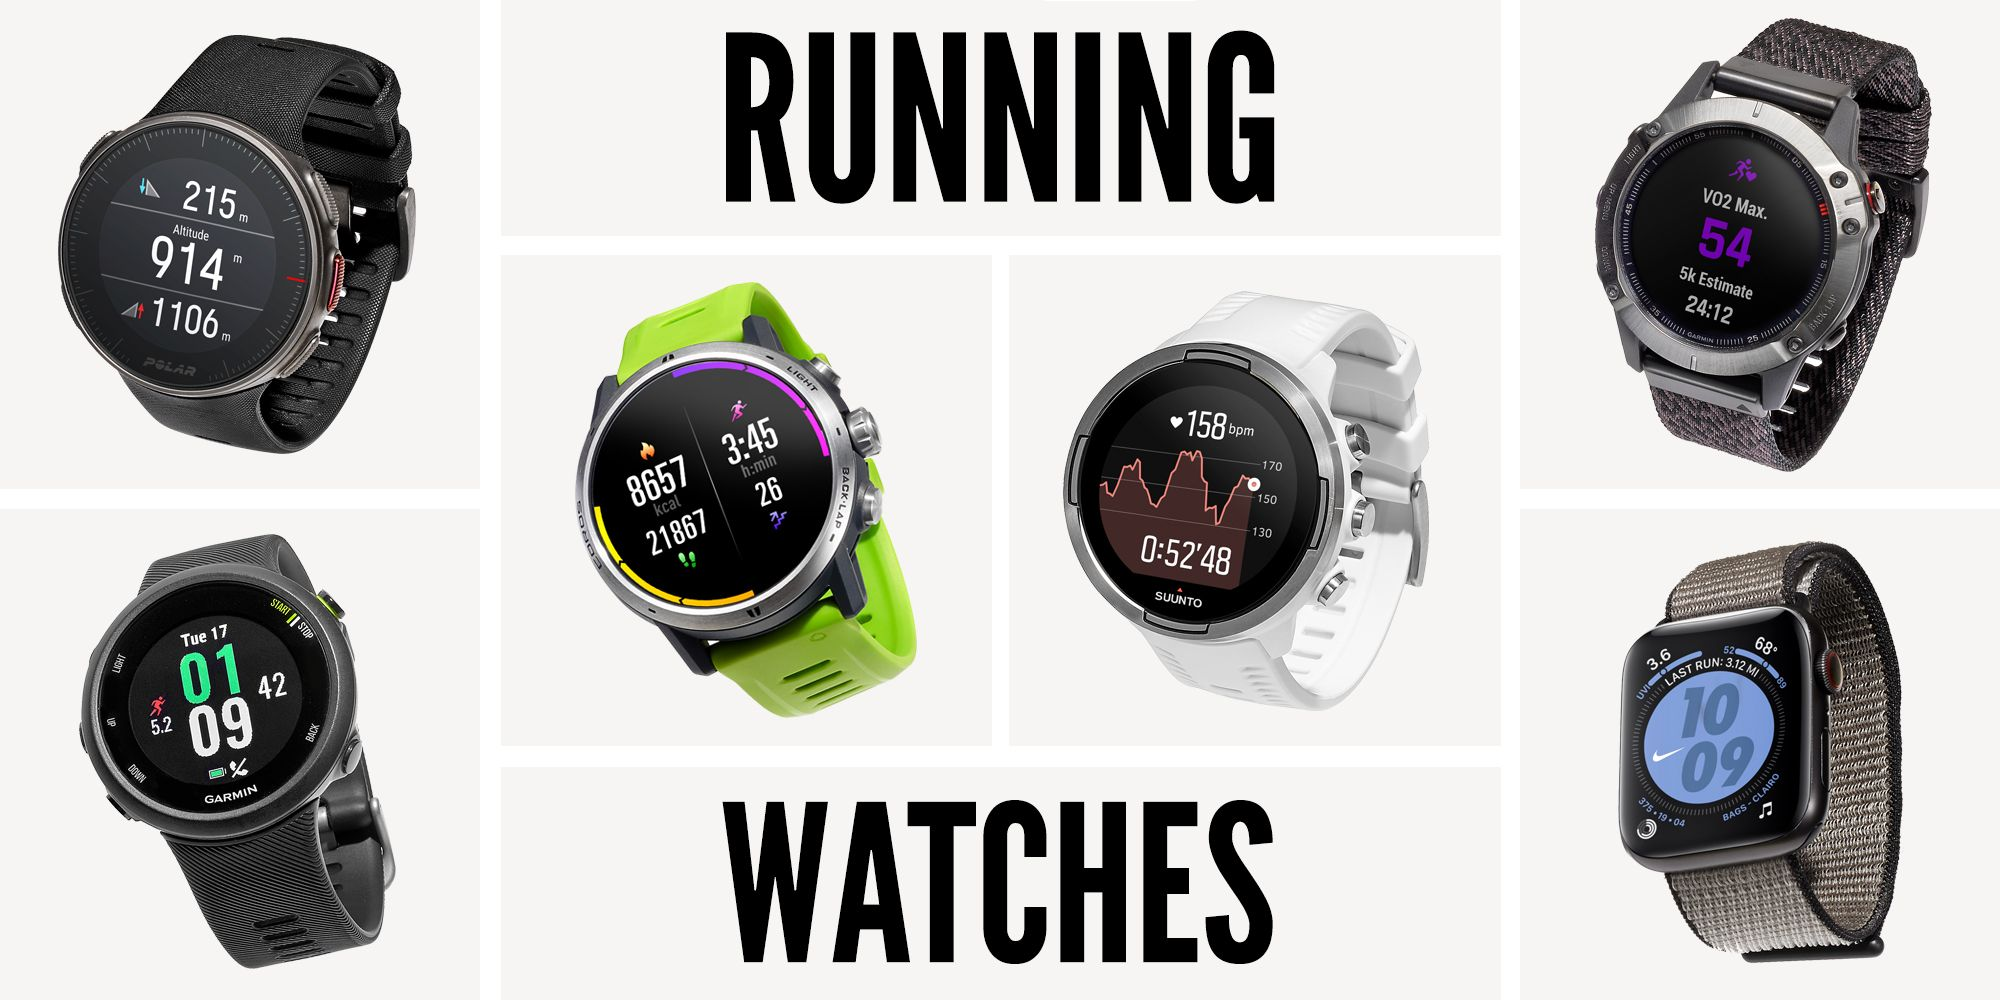 The best gps running watches; tried, tested and reviewed.